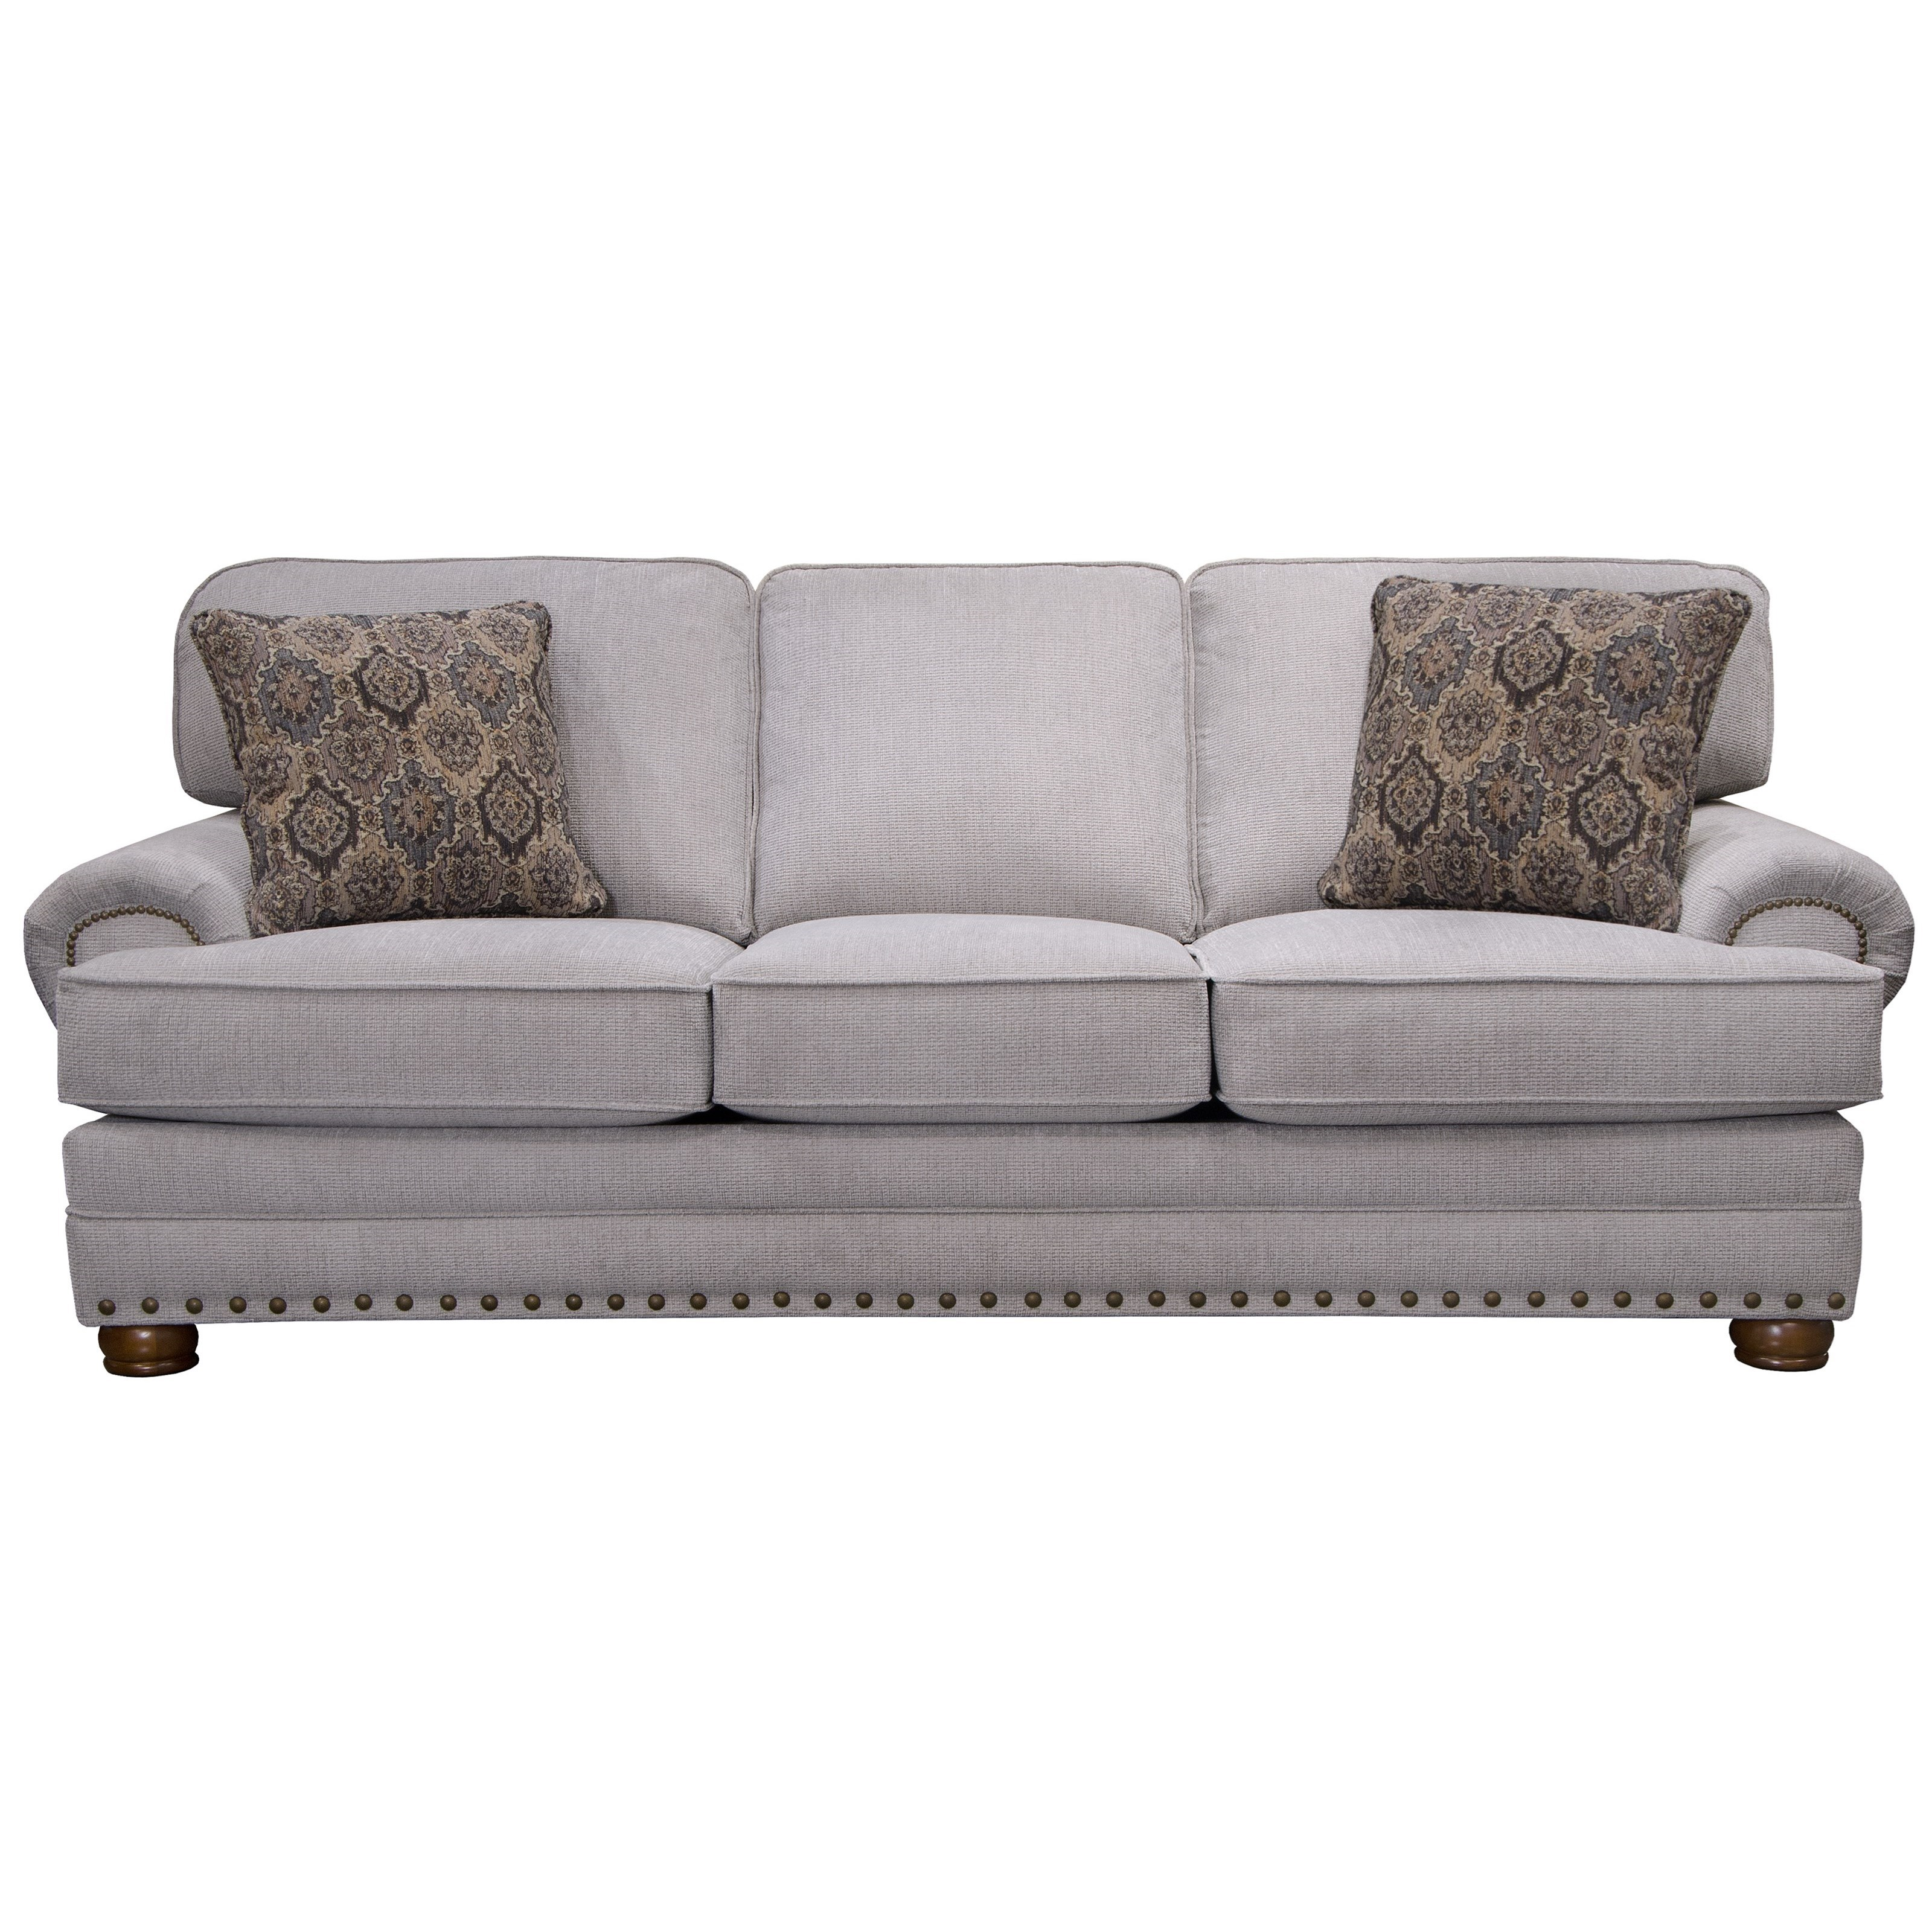 Singletary Queen Sleeper by Jackson Furniture at Bullard Furniture